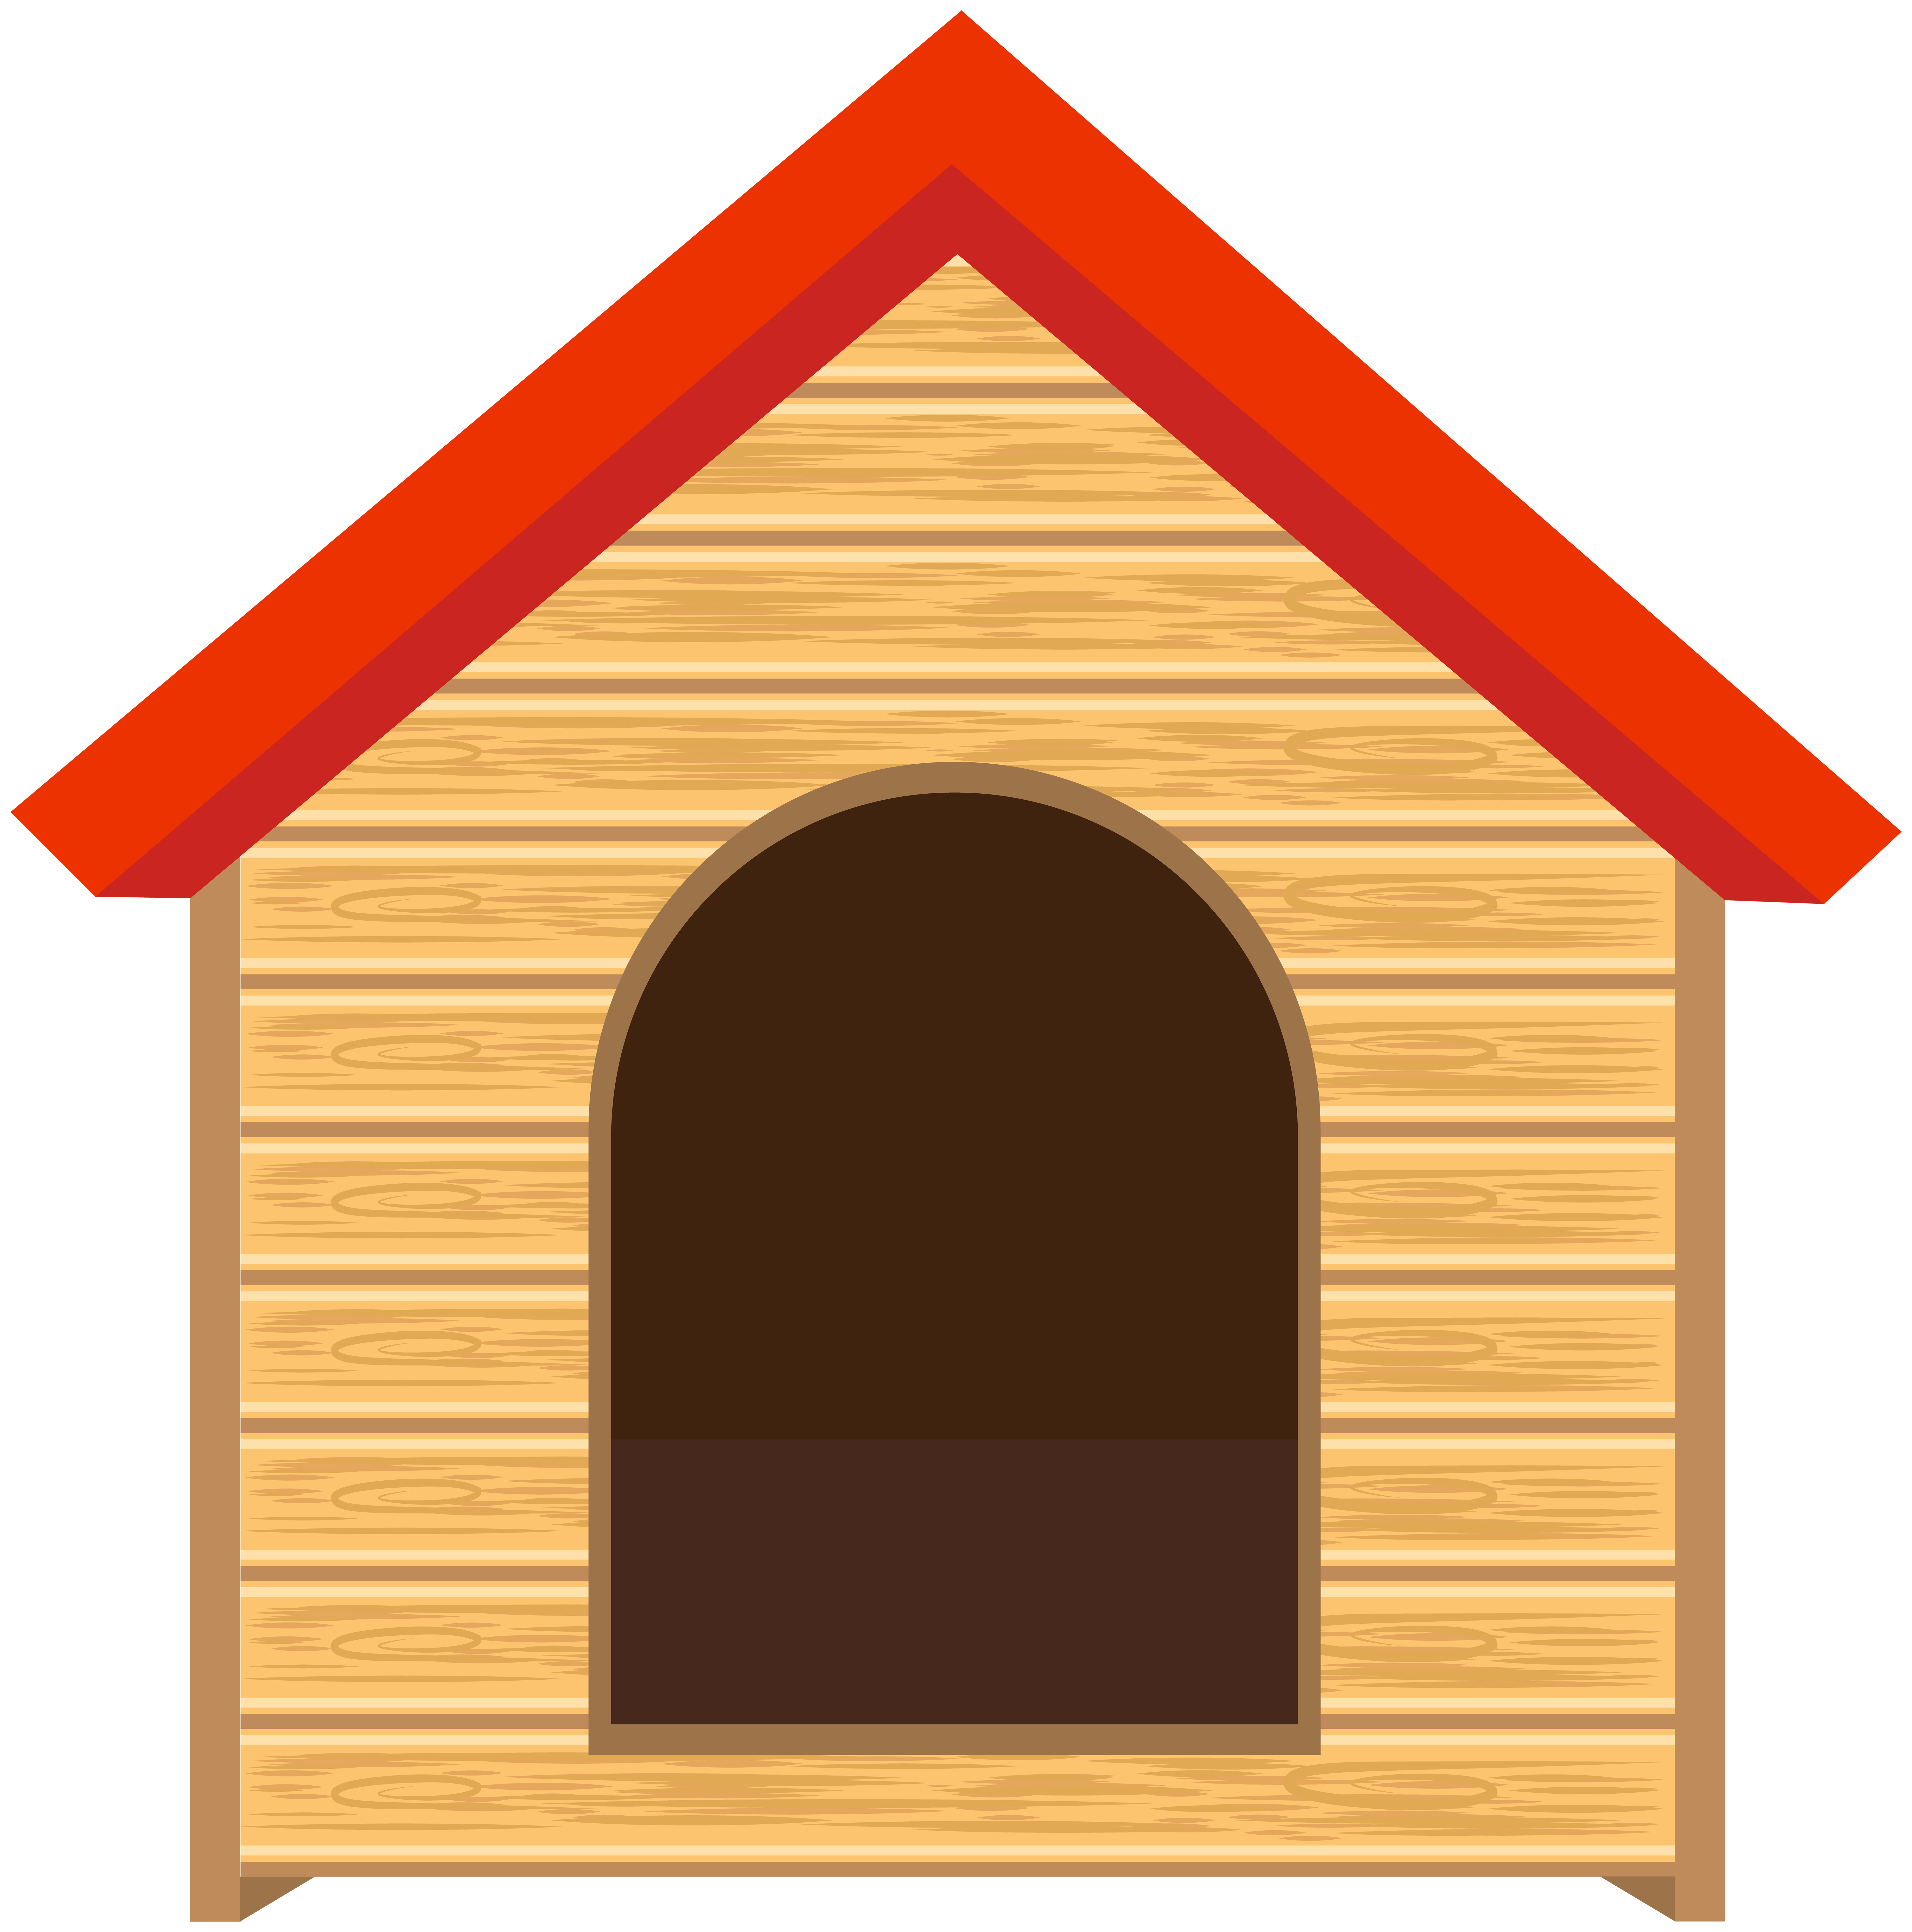 Dogs house clipart clip art transparent library Doghouse PNG Clip Art Image - Best WEB Clipart clip art transparent library